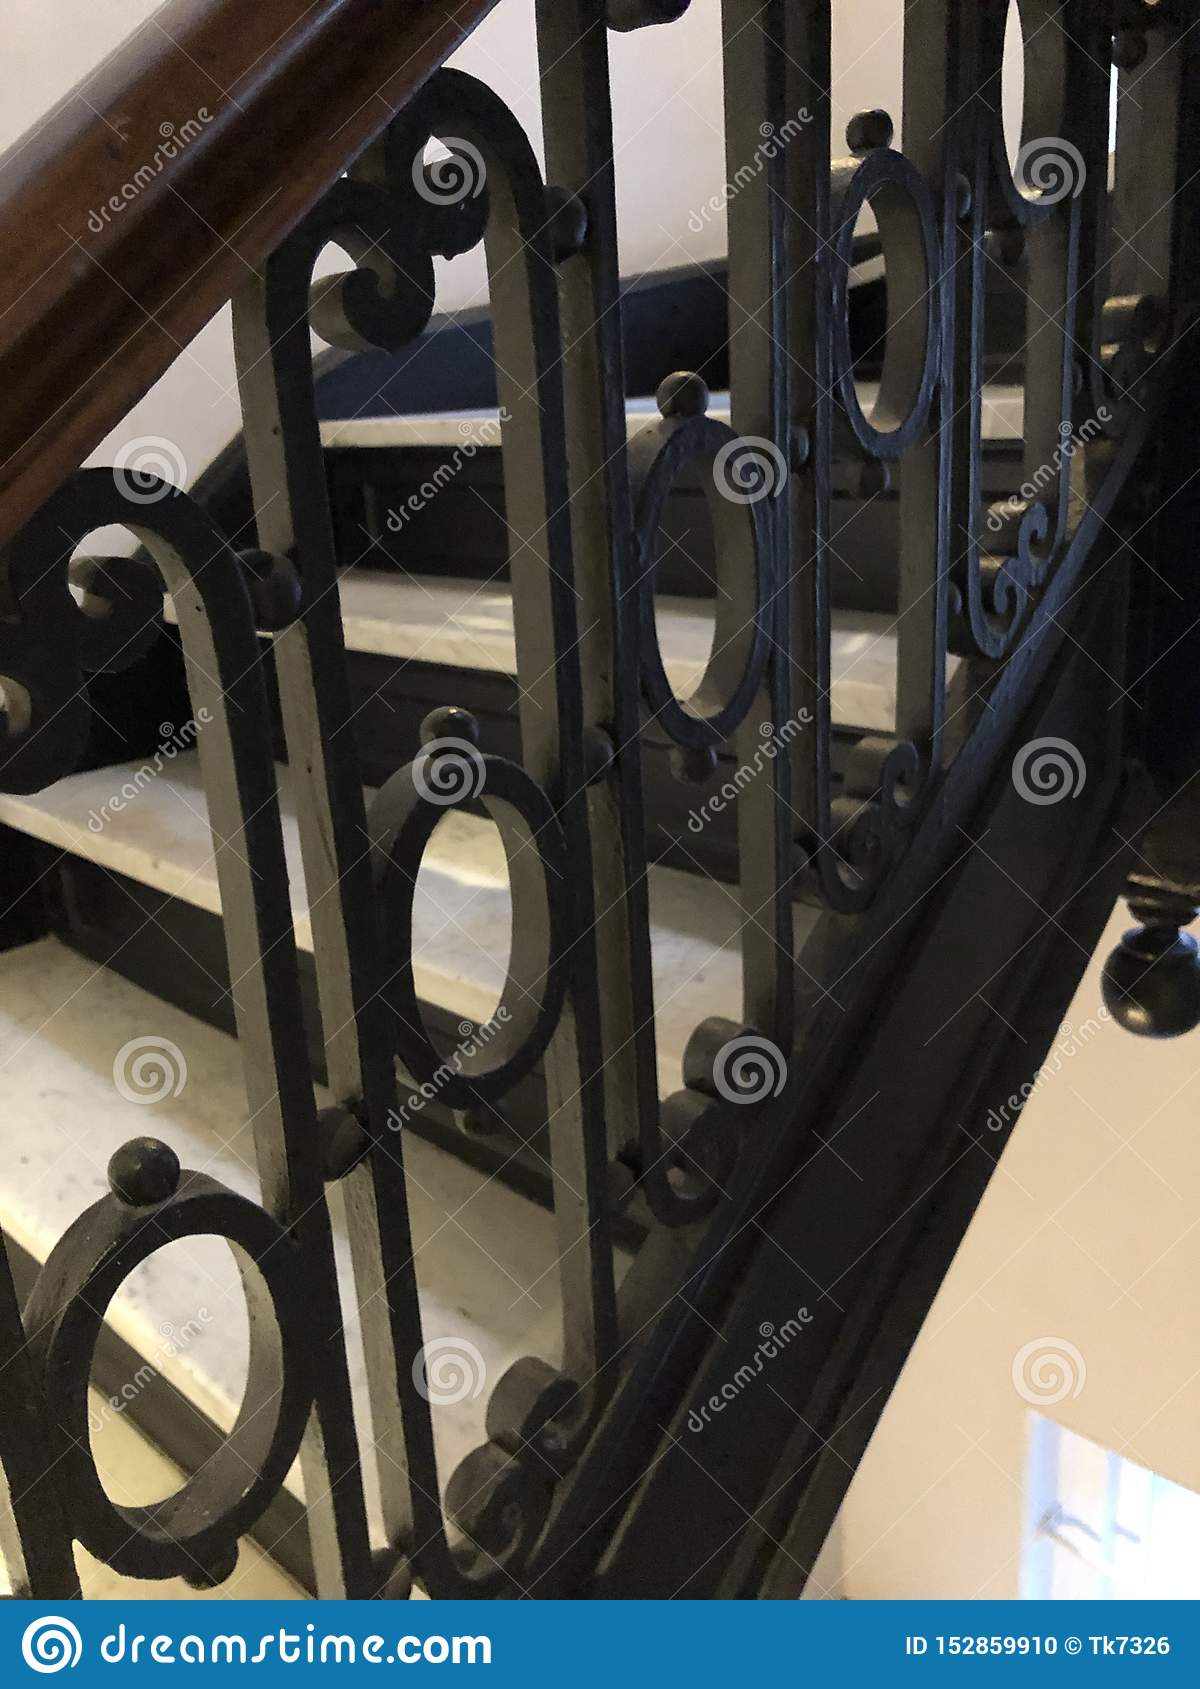 Wrought Iron Stair Railing Stock Photo Image Of Wrought 152859910